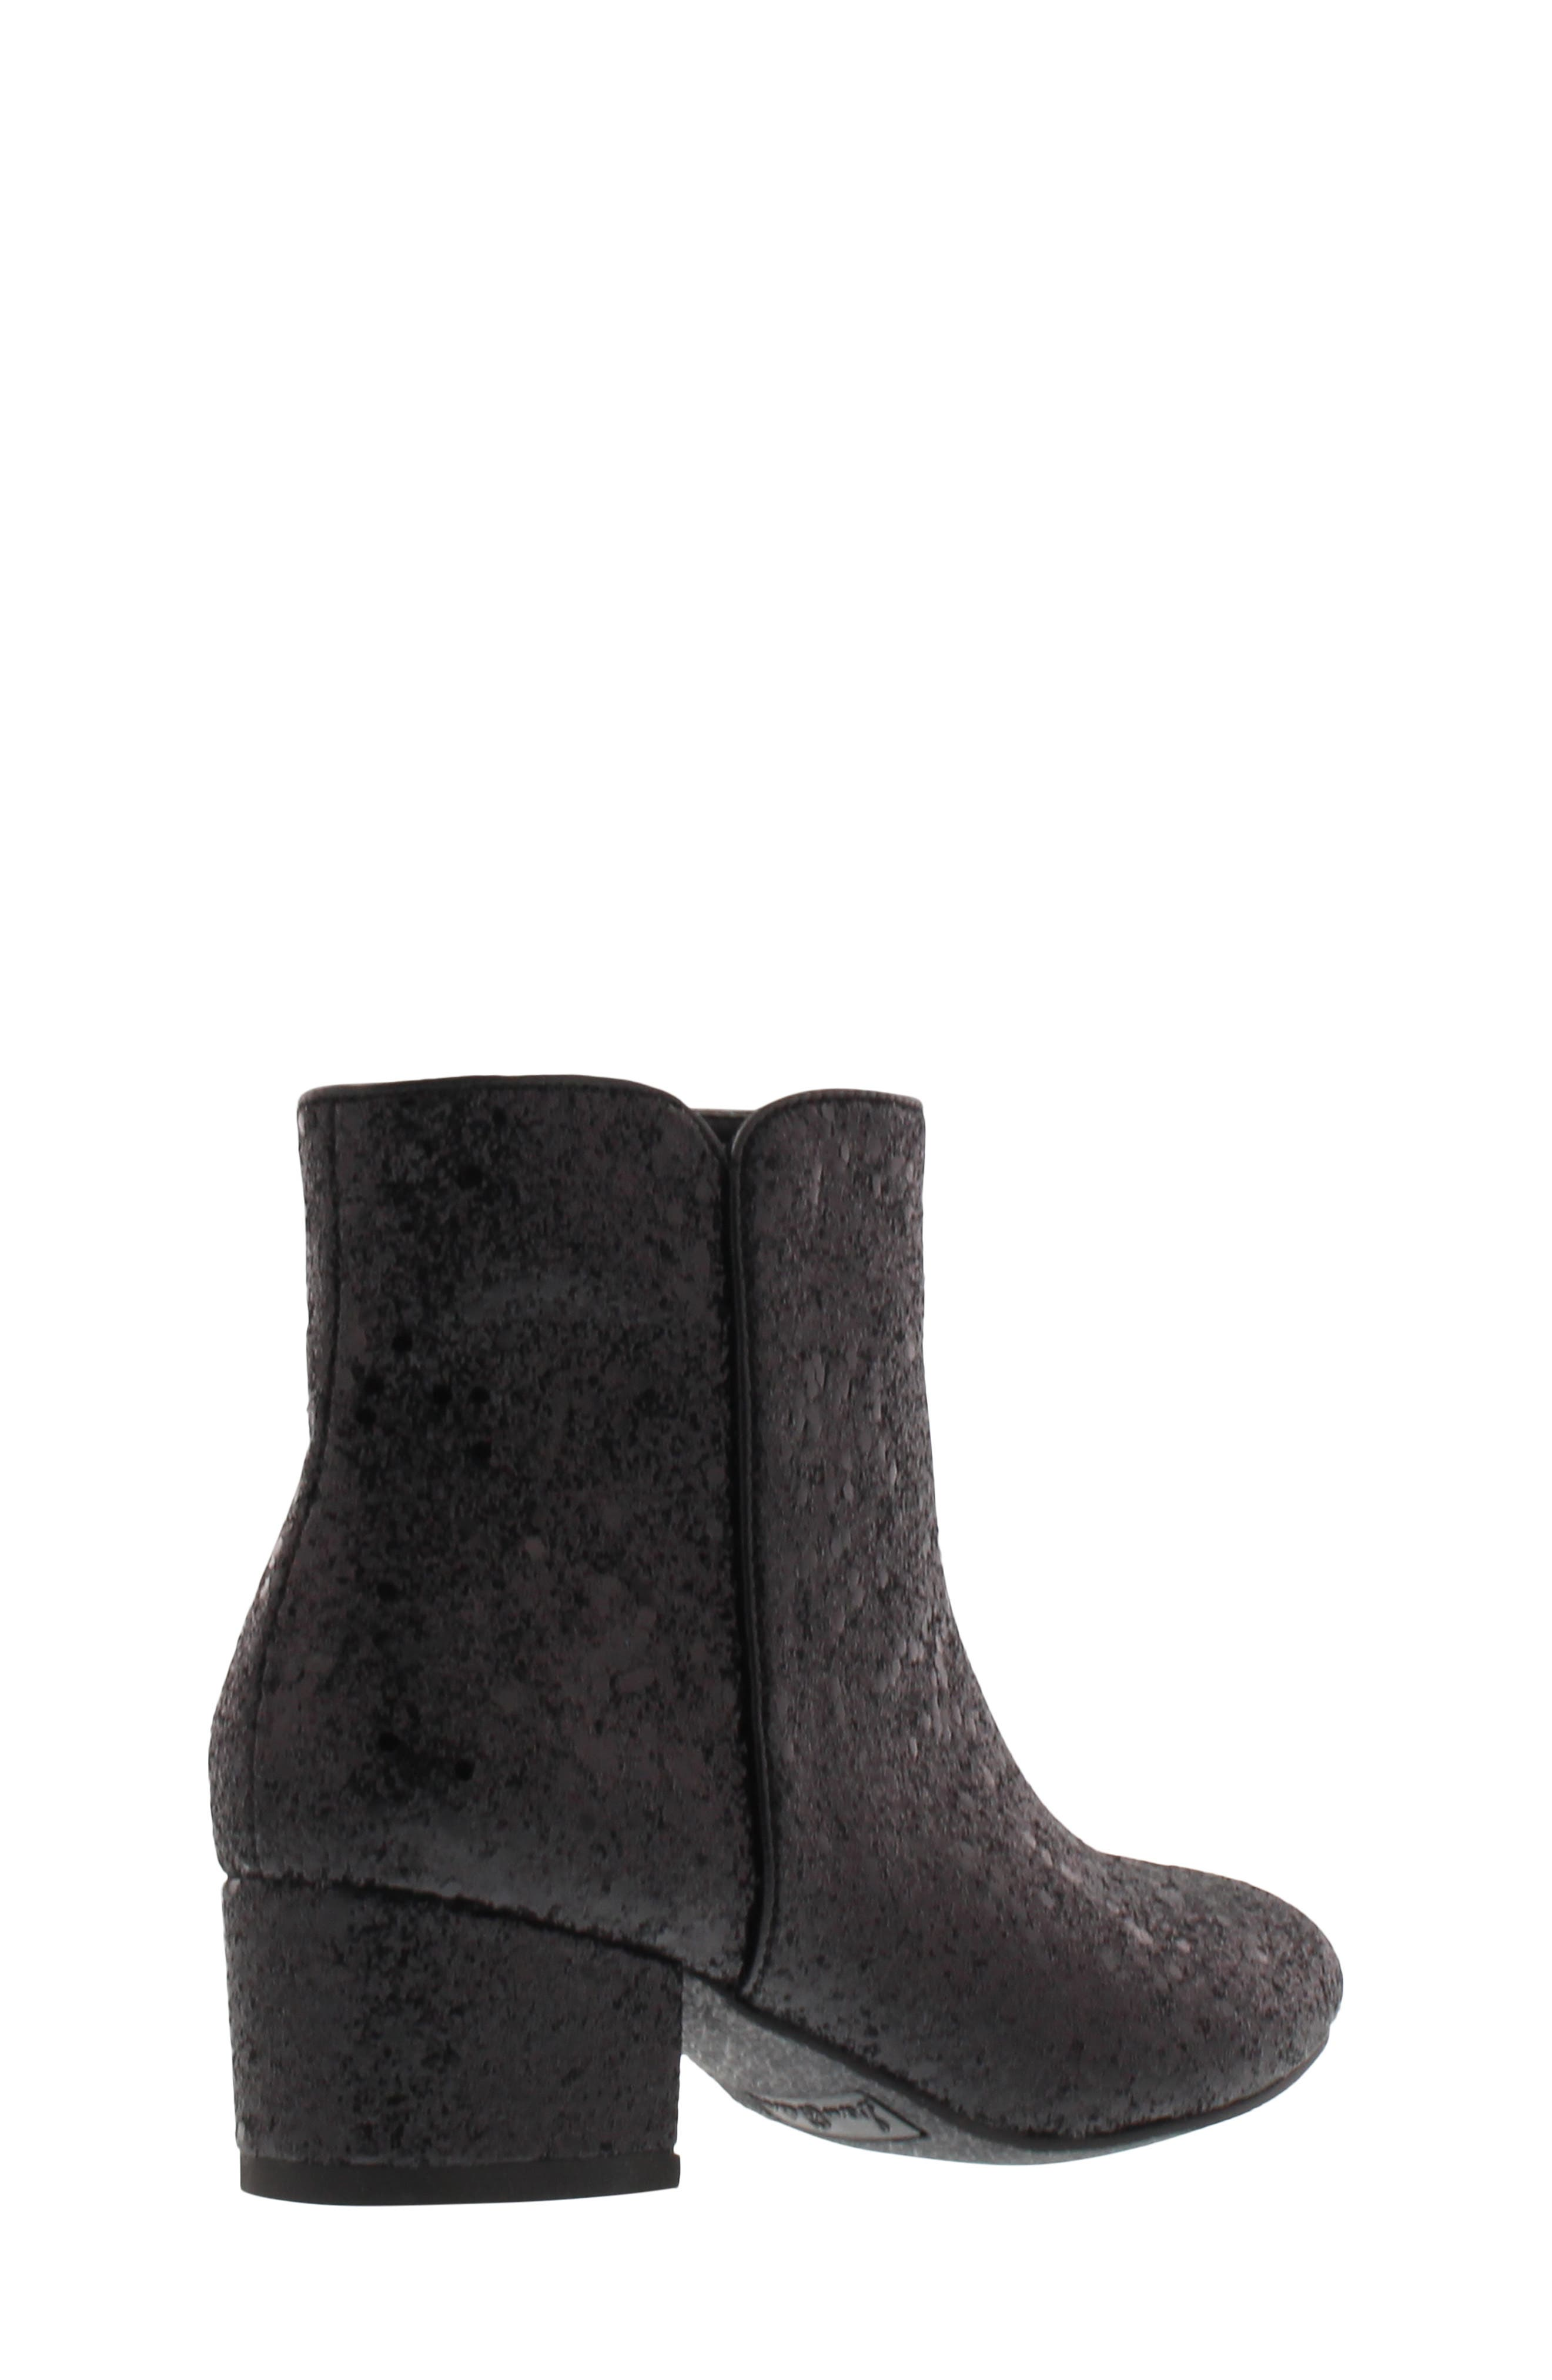 Evelyn Cosmos Bootie,                             Alternate thumbnail 2, color,                             BLACK